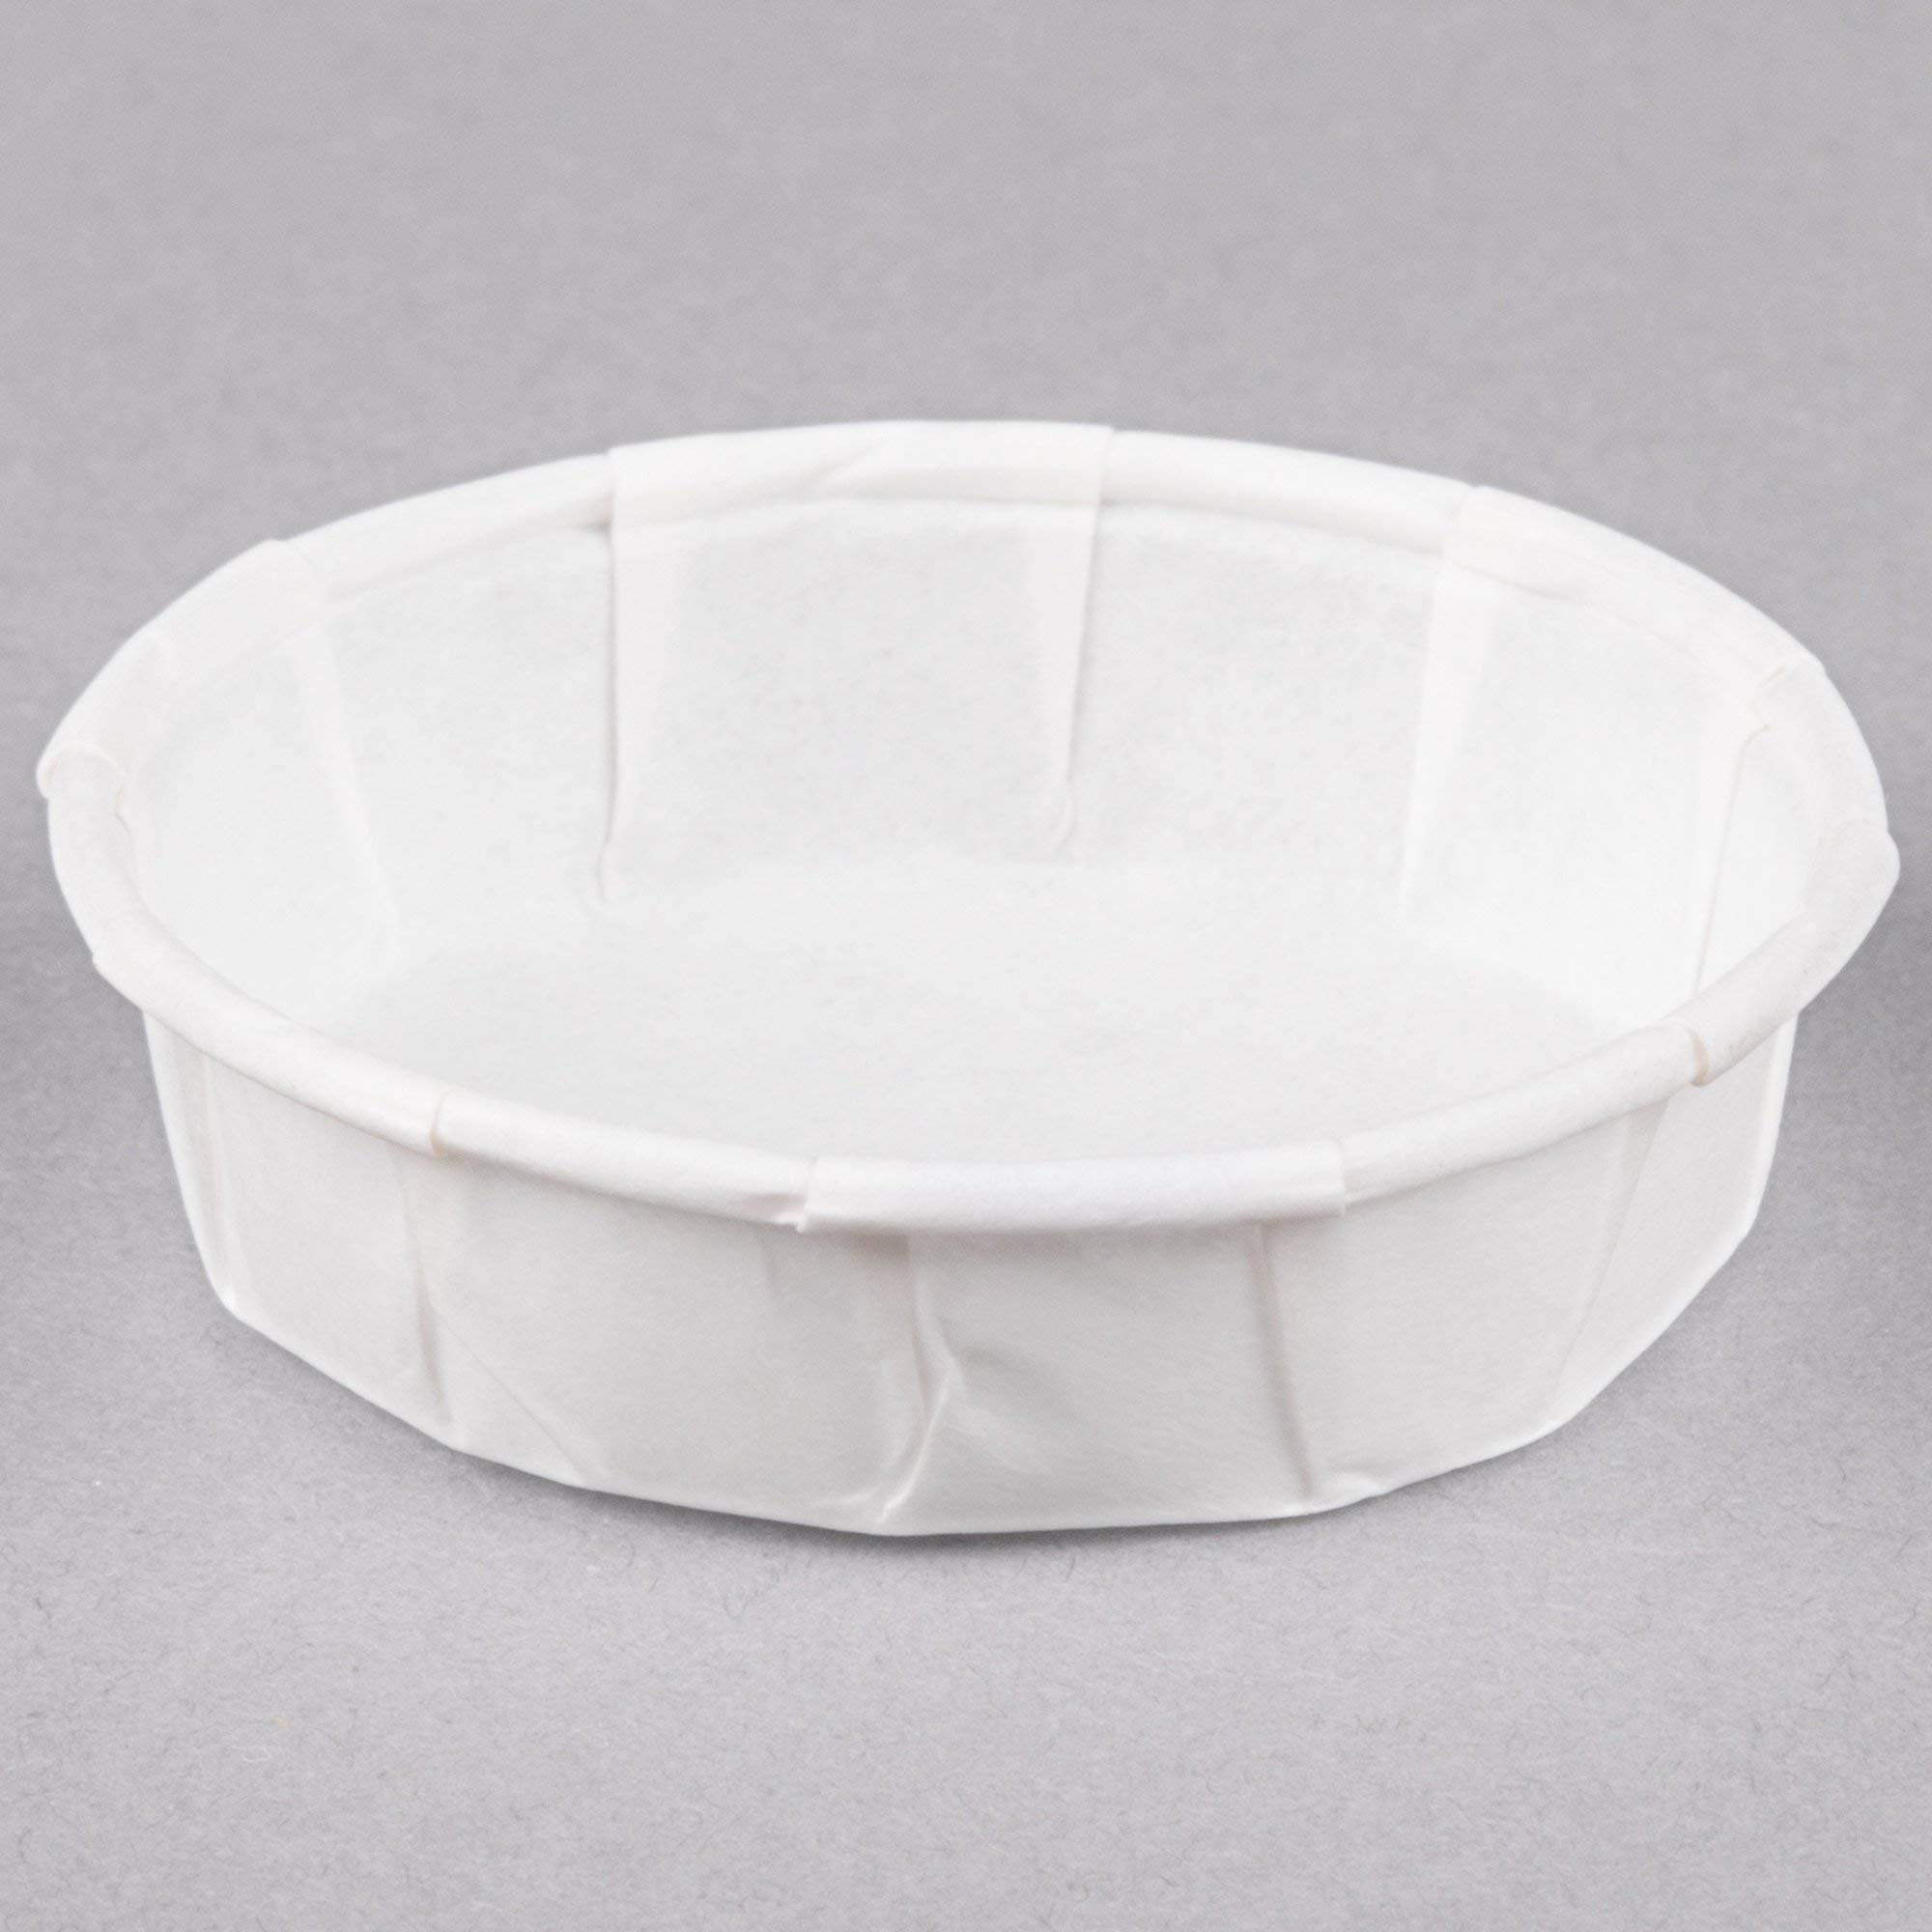 Genpak F075S .75 oz. Squat Harvest Paper Souffle / Portion Cup - 5000/Case by Genpak